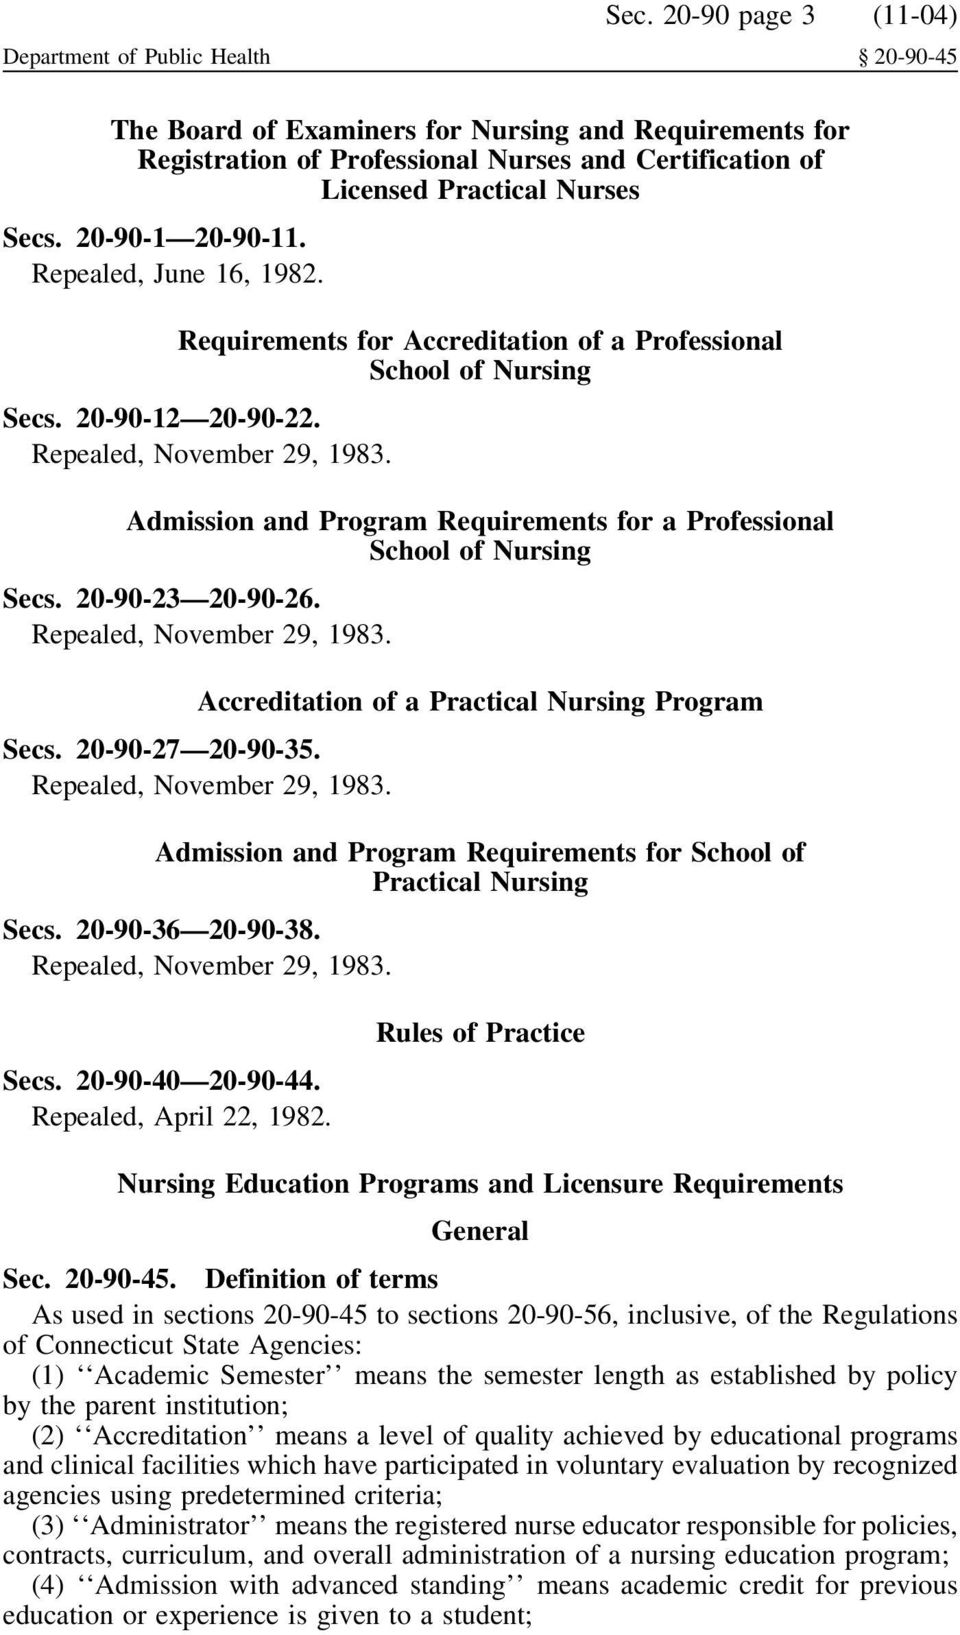 Repealed, June 16, 1982. Requirements for Accreditation of a Professional School of Nursing Secs. 20-90-12 20-90-22. Repealed, November 29, 1983.